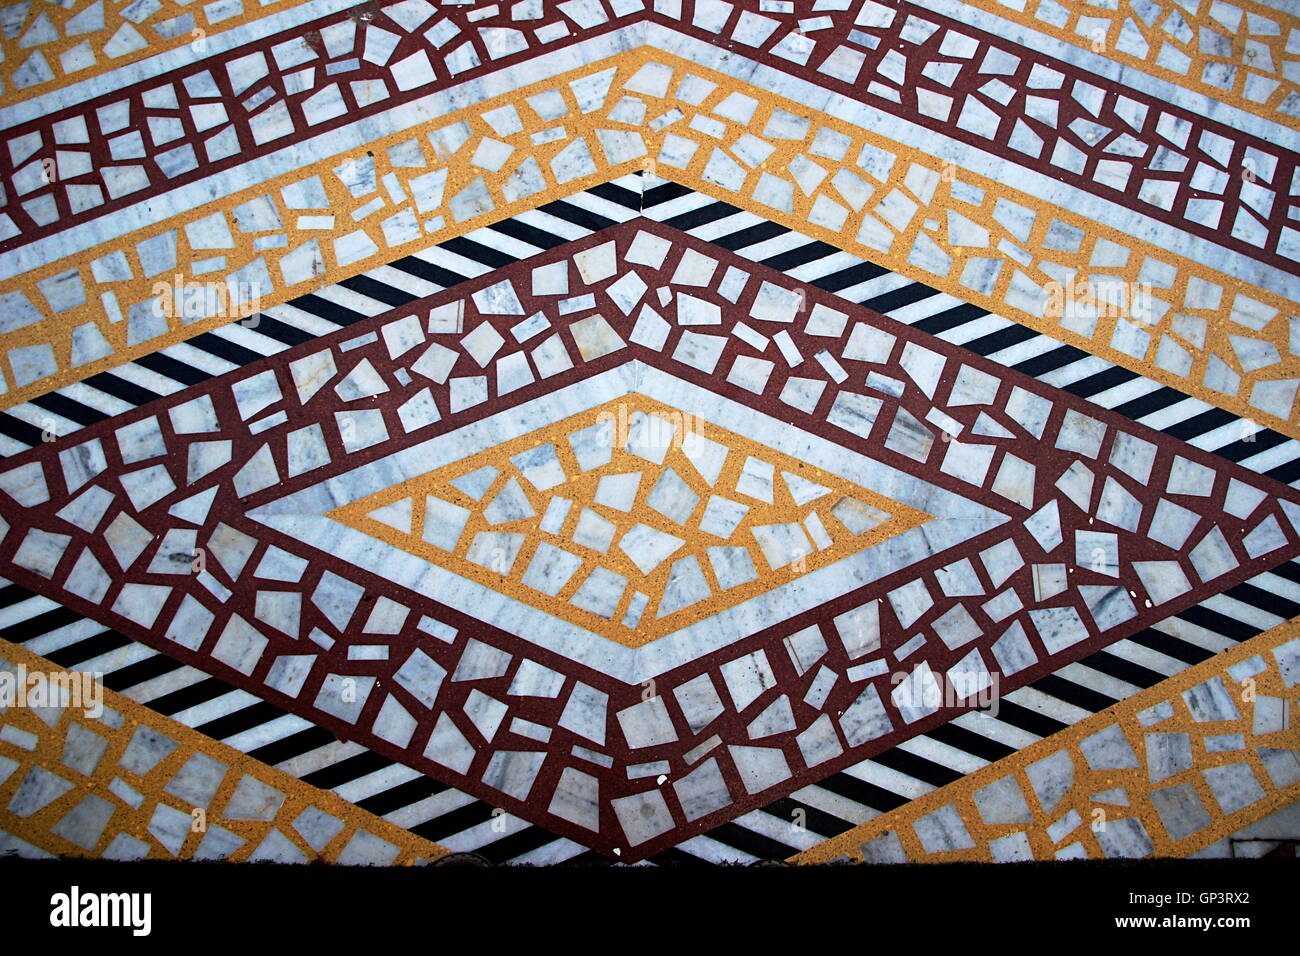 Geometrical design of marble mosaic flooring with orange, black and brown colored cement filling - Stock Image